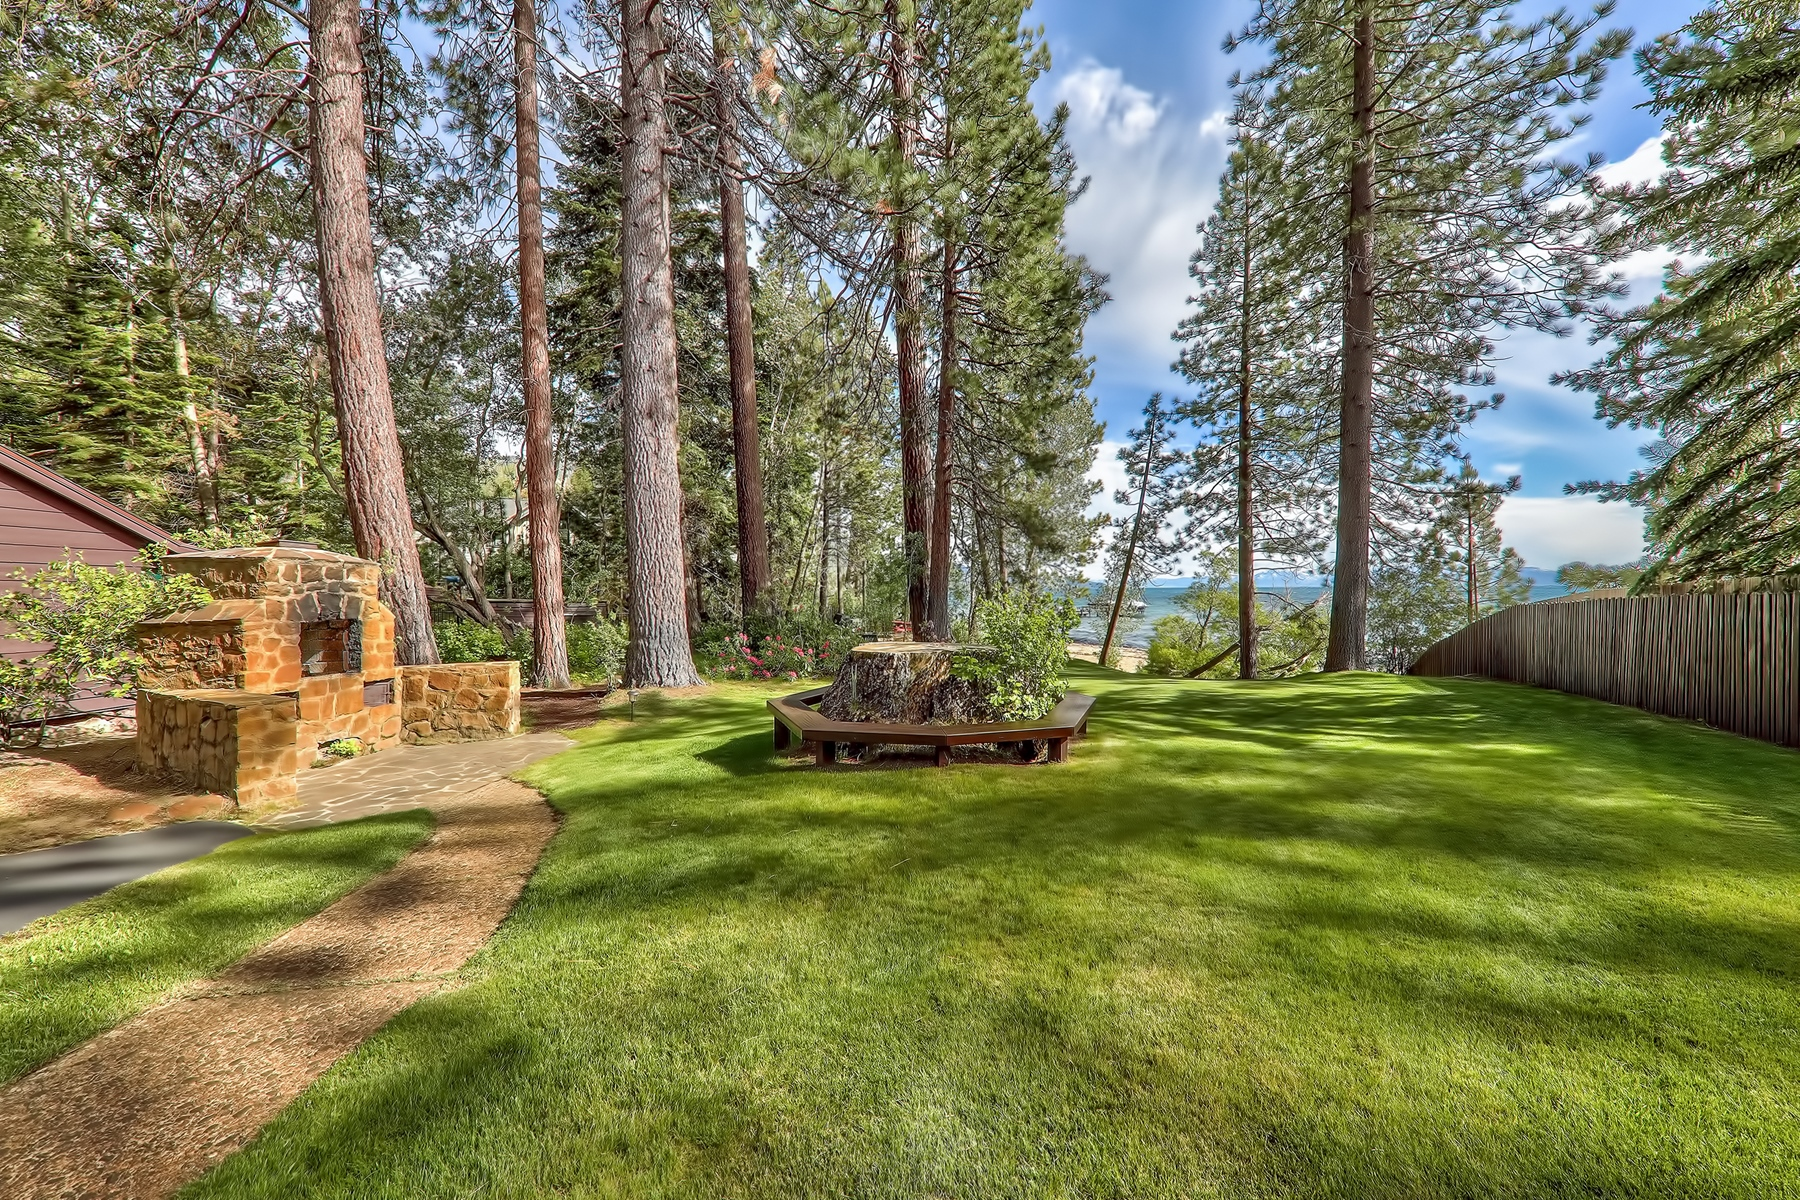 Additional photo for property listing at 1615 Pinecone Circle, Incline Village, NV 89451 1615 Pinecone Circle Incline Village, 内华达州 89451 美国